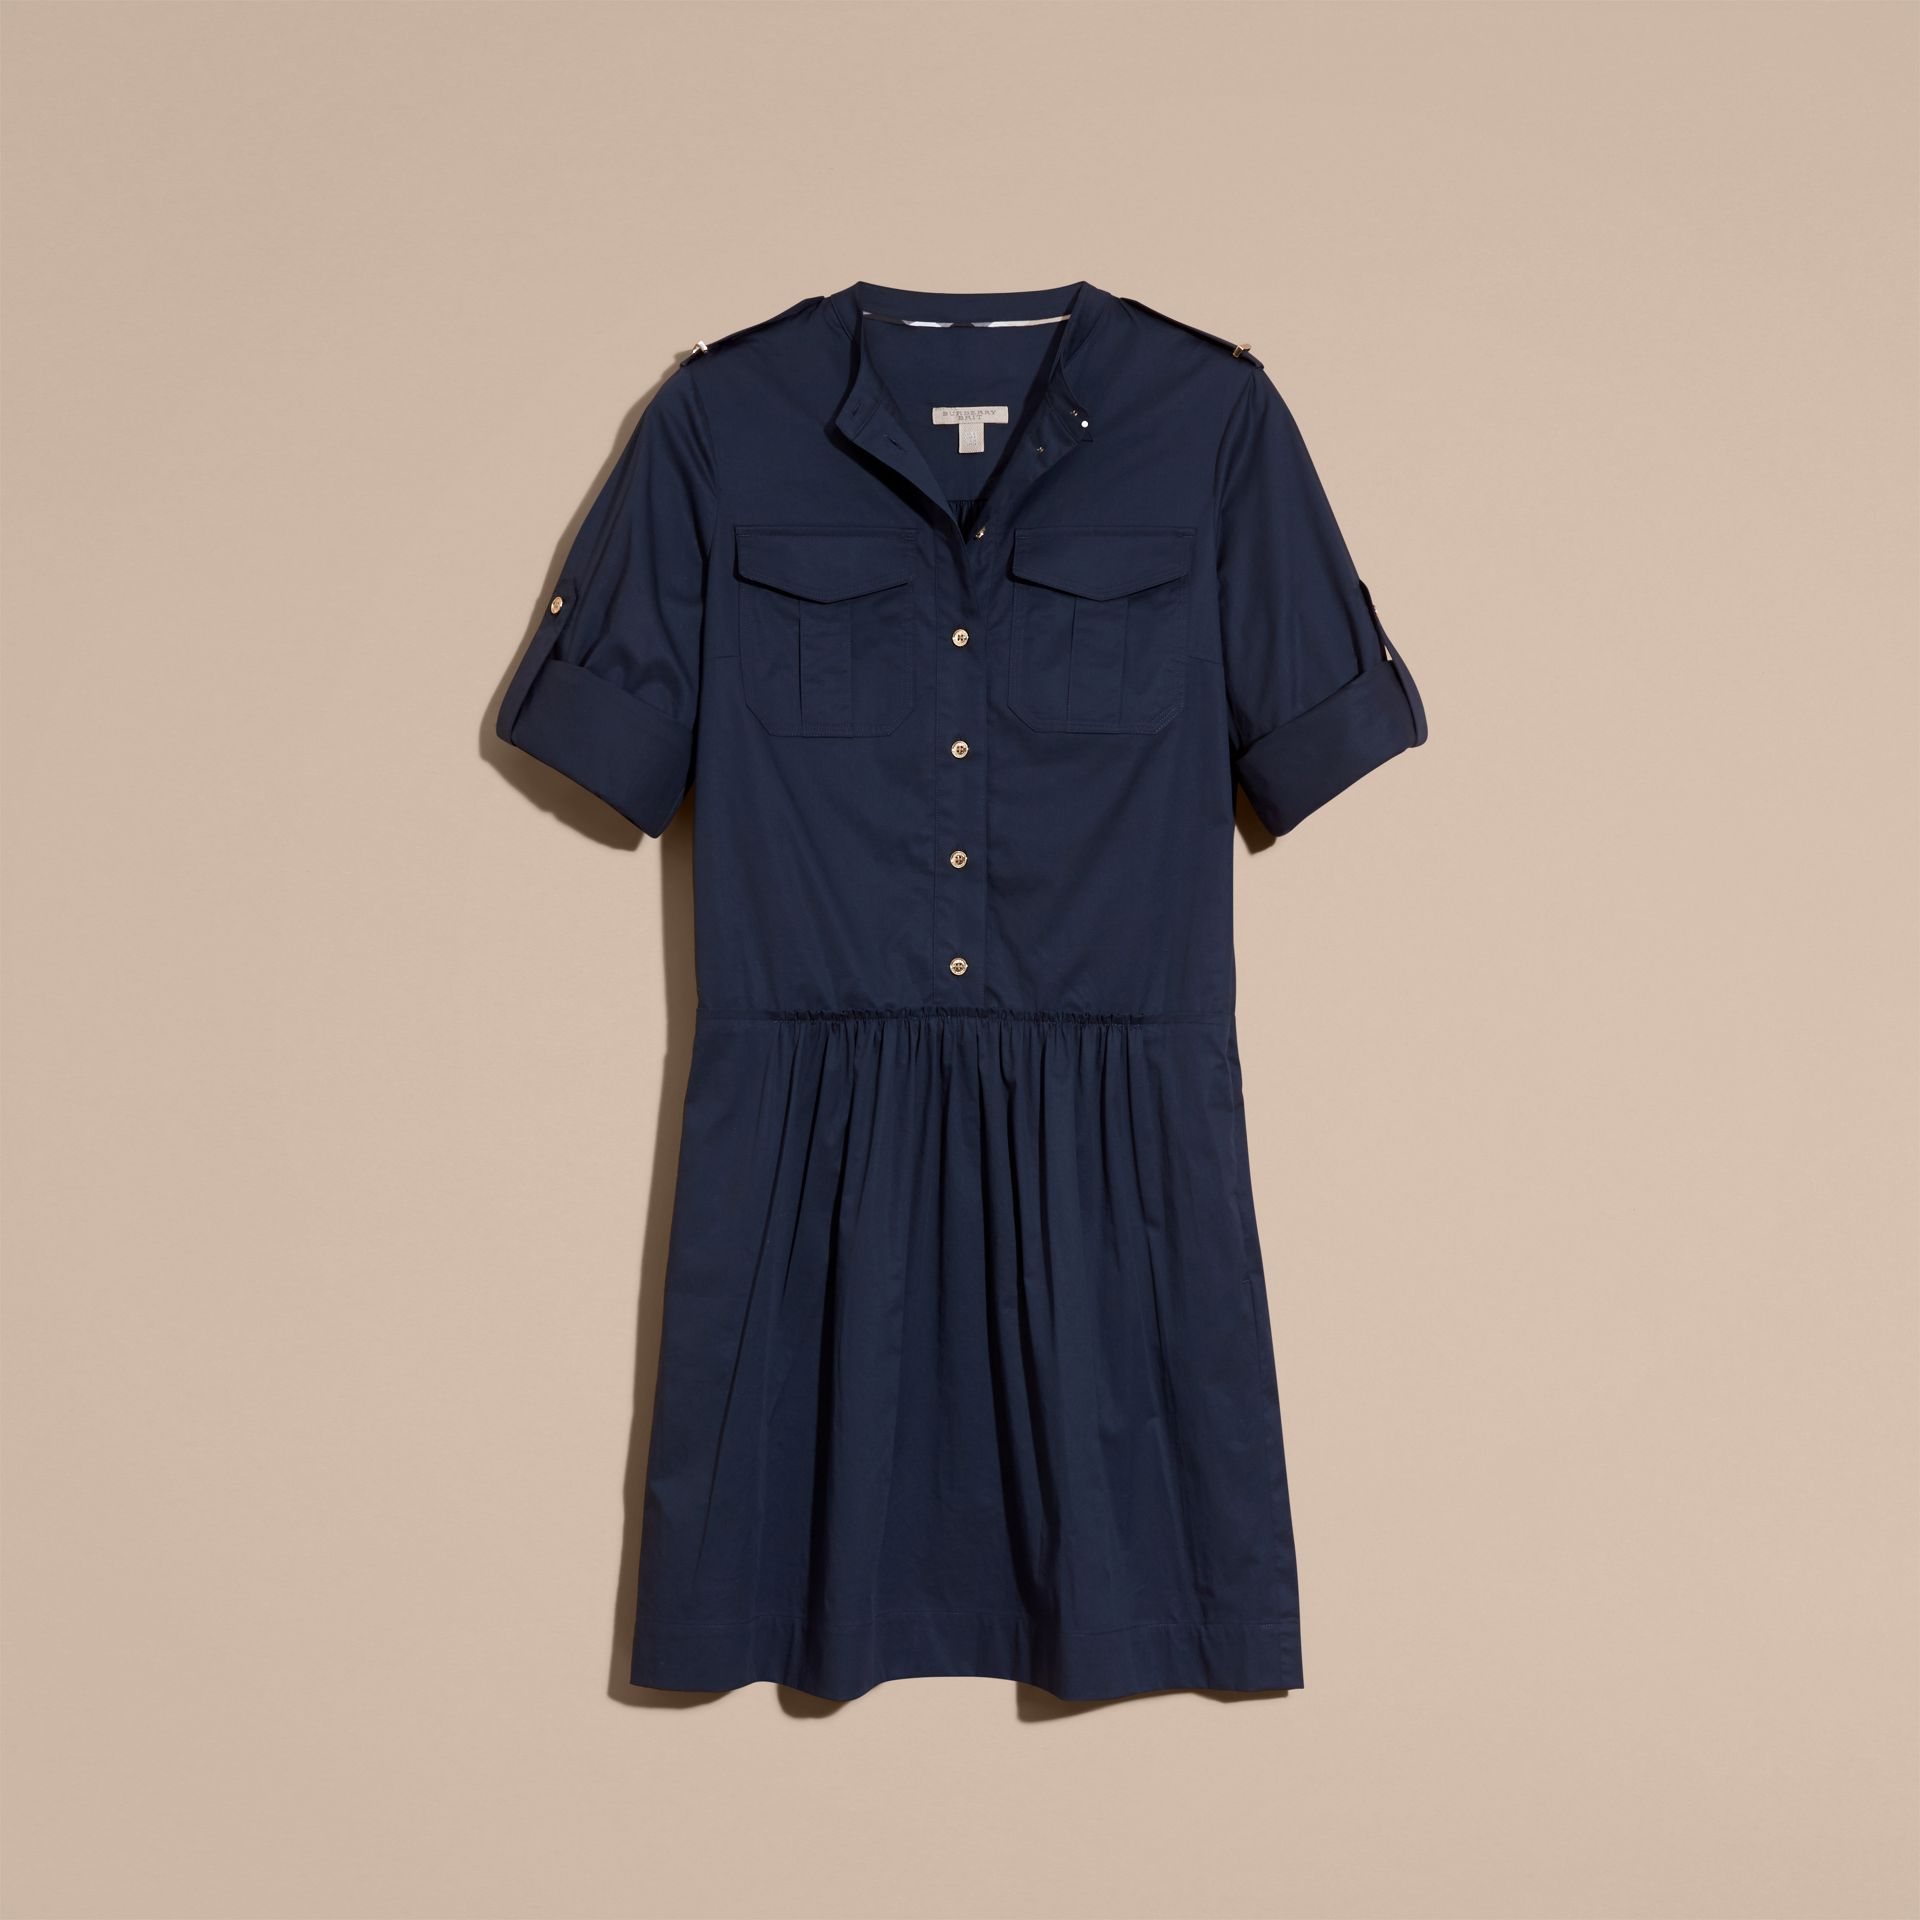 Dark pewter blue Military-inspired Cotton Blend Shirt Dress Dark Pewter Blue - gallery image 4